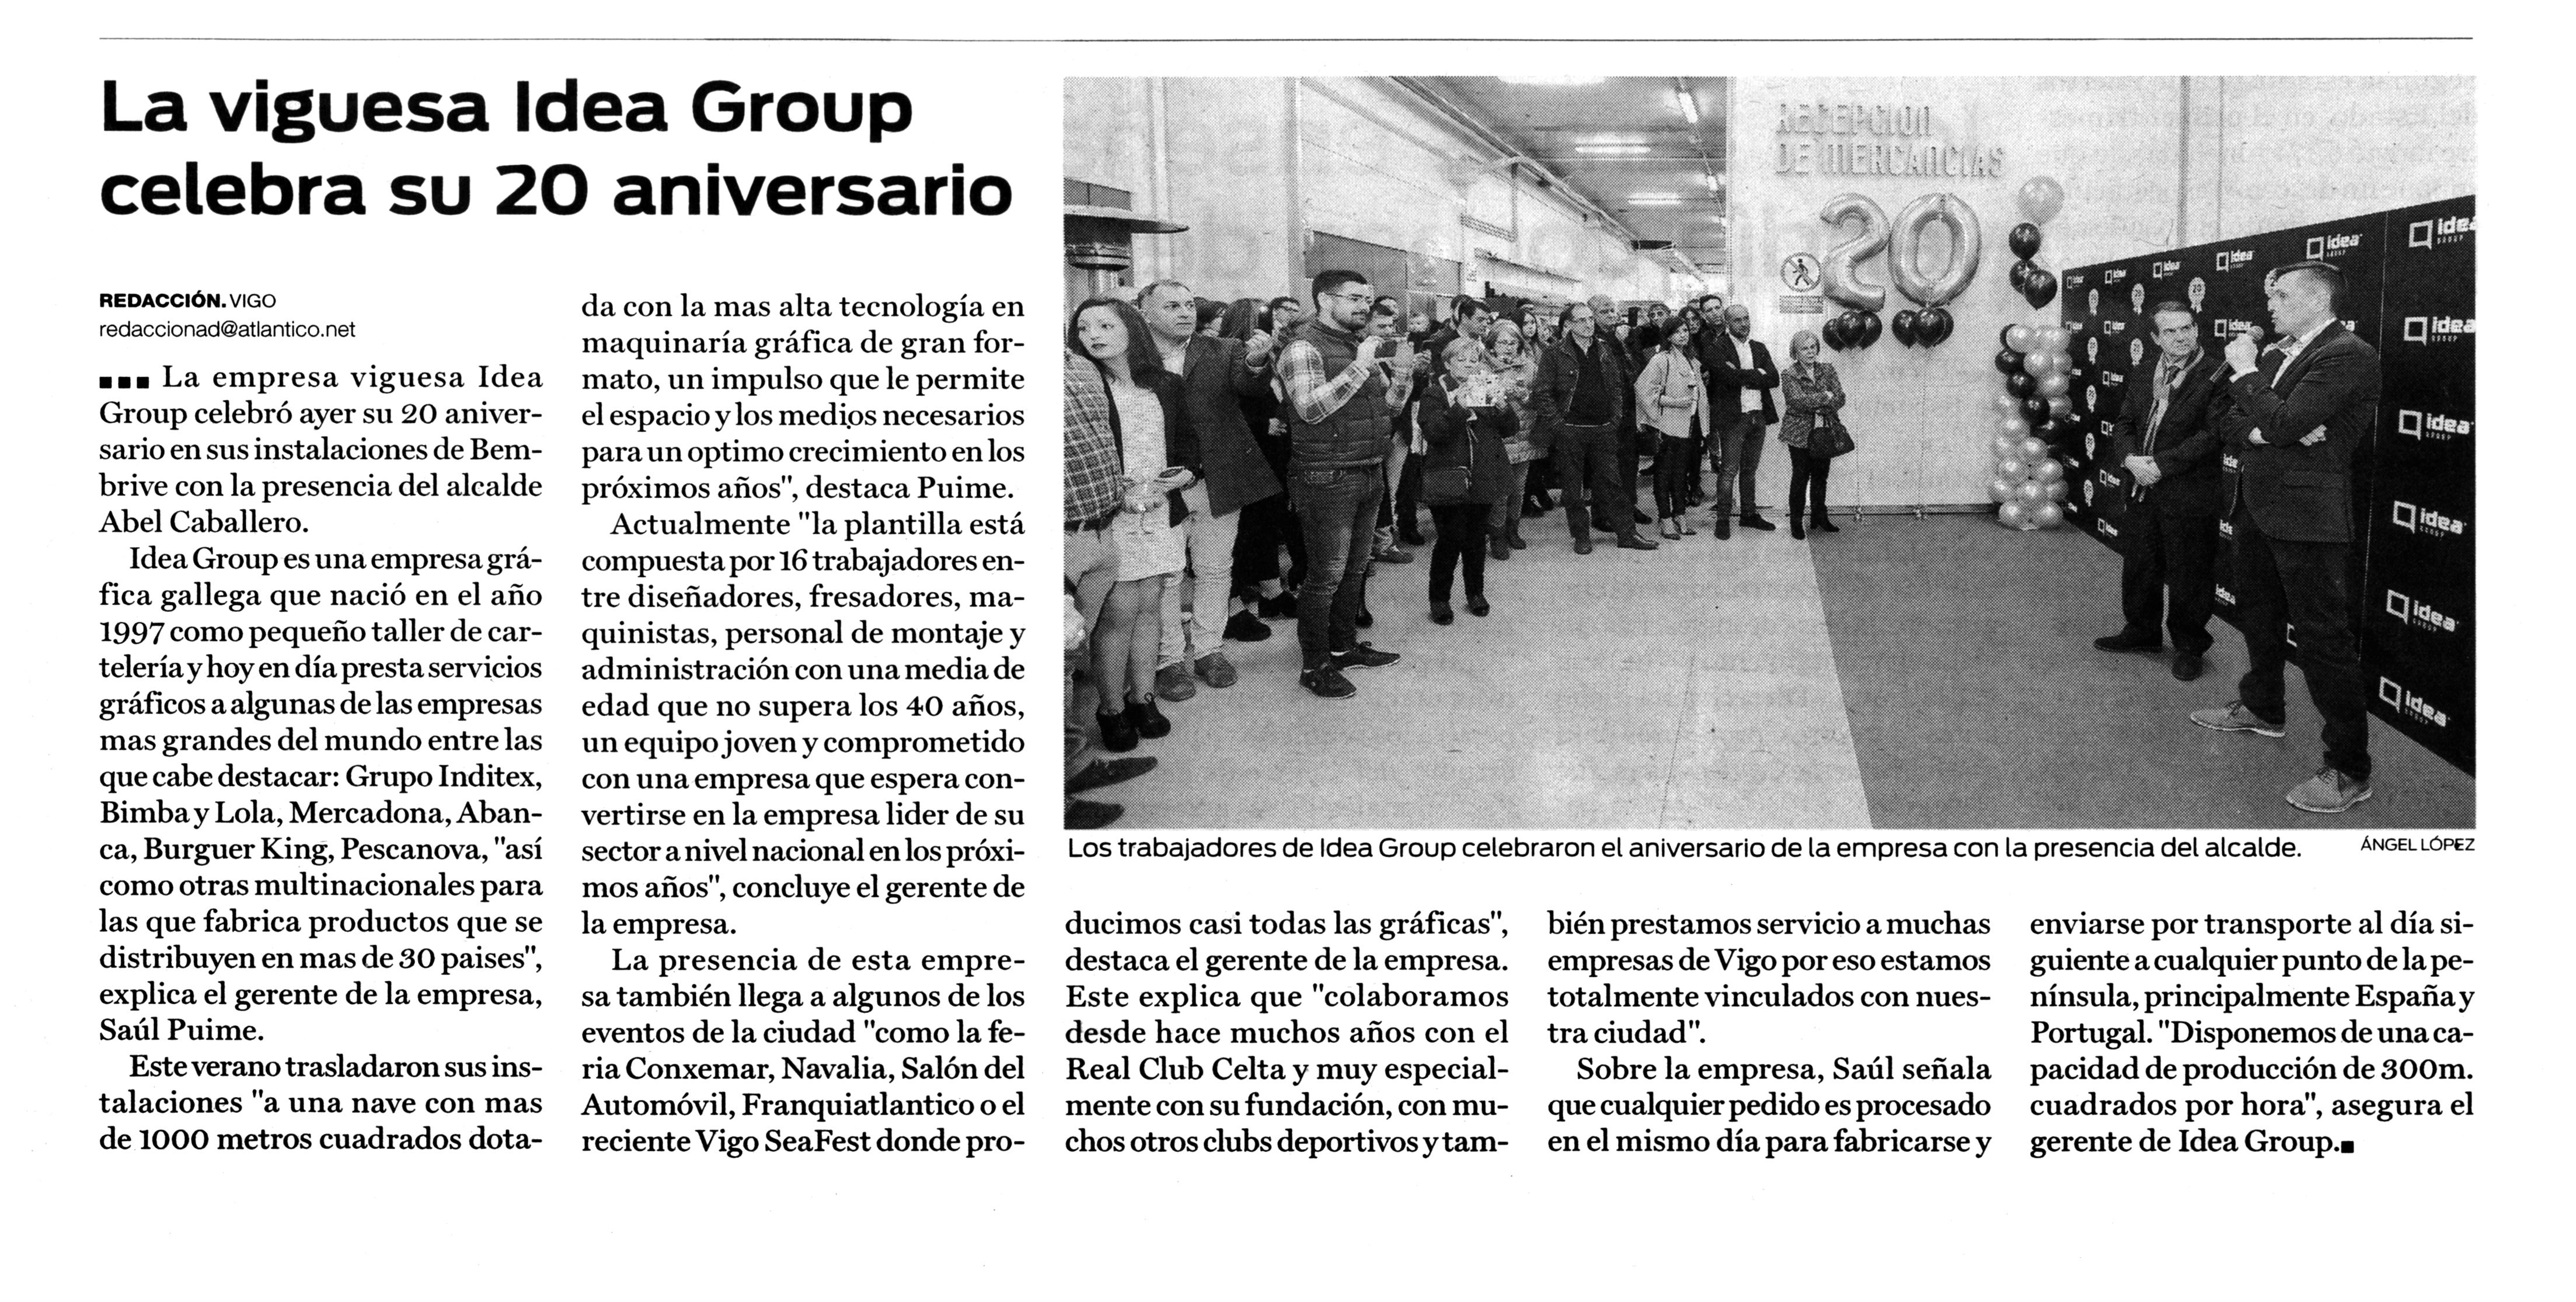 noticia atlantico diario aniversario ideagroup